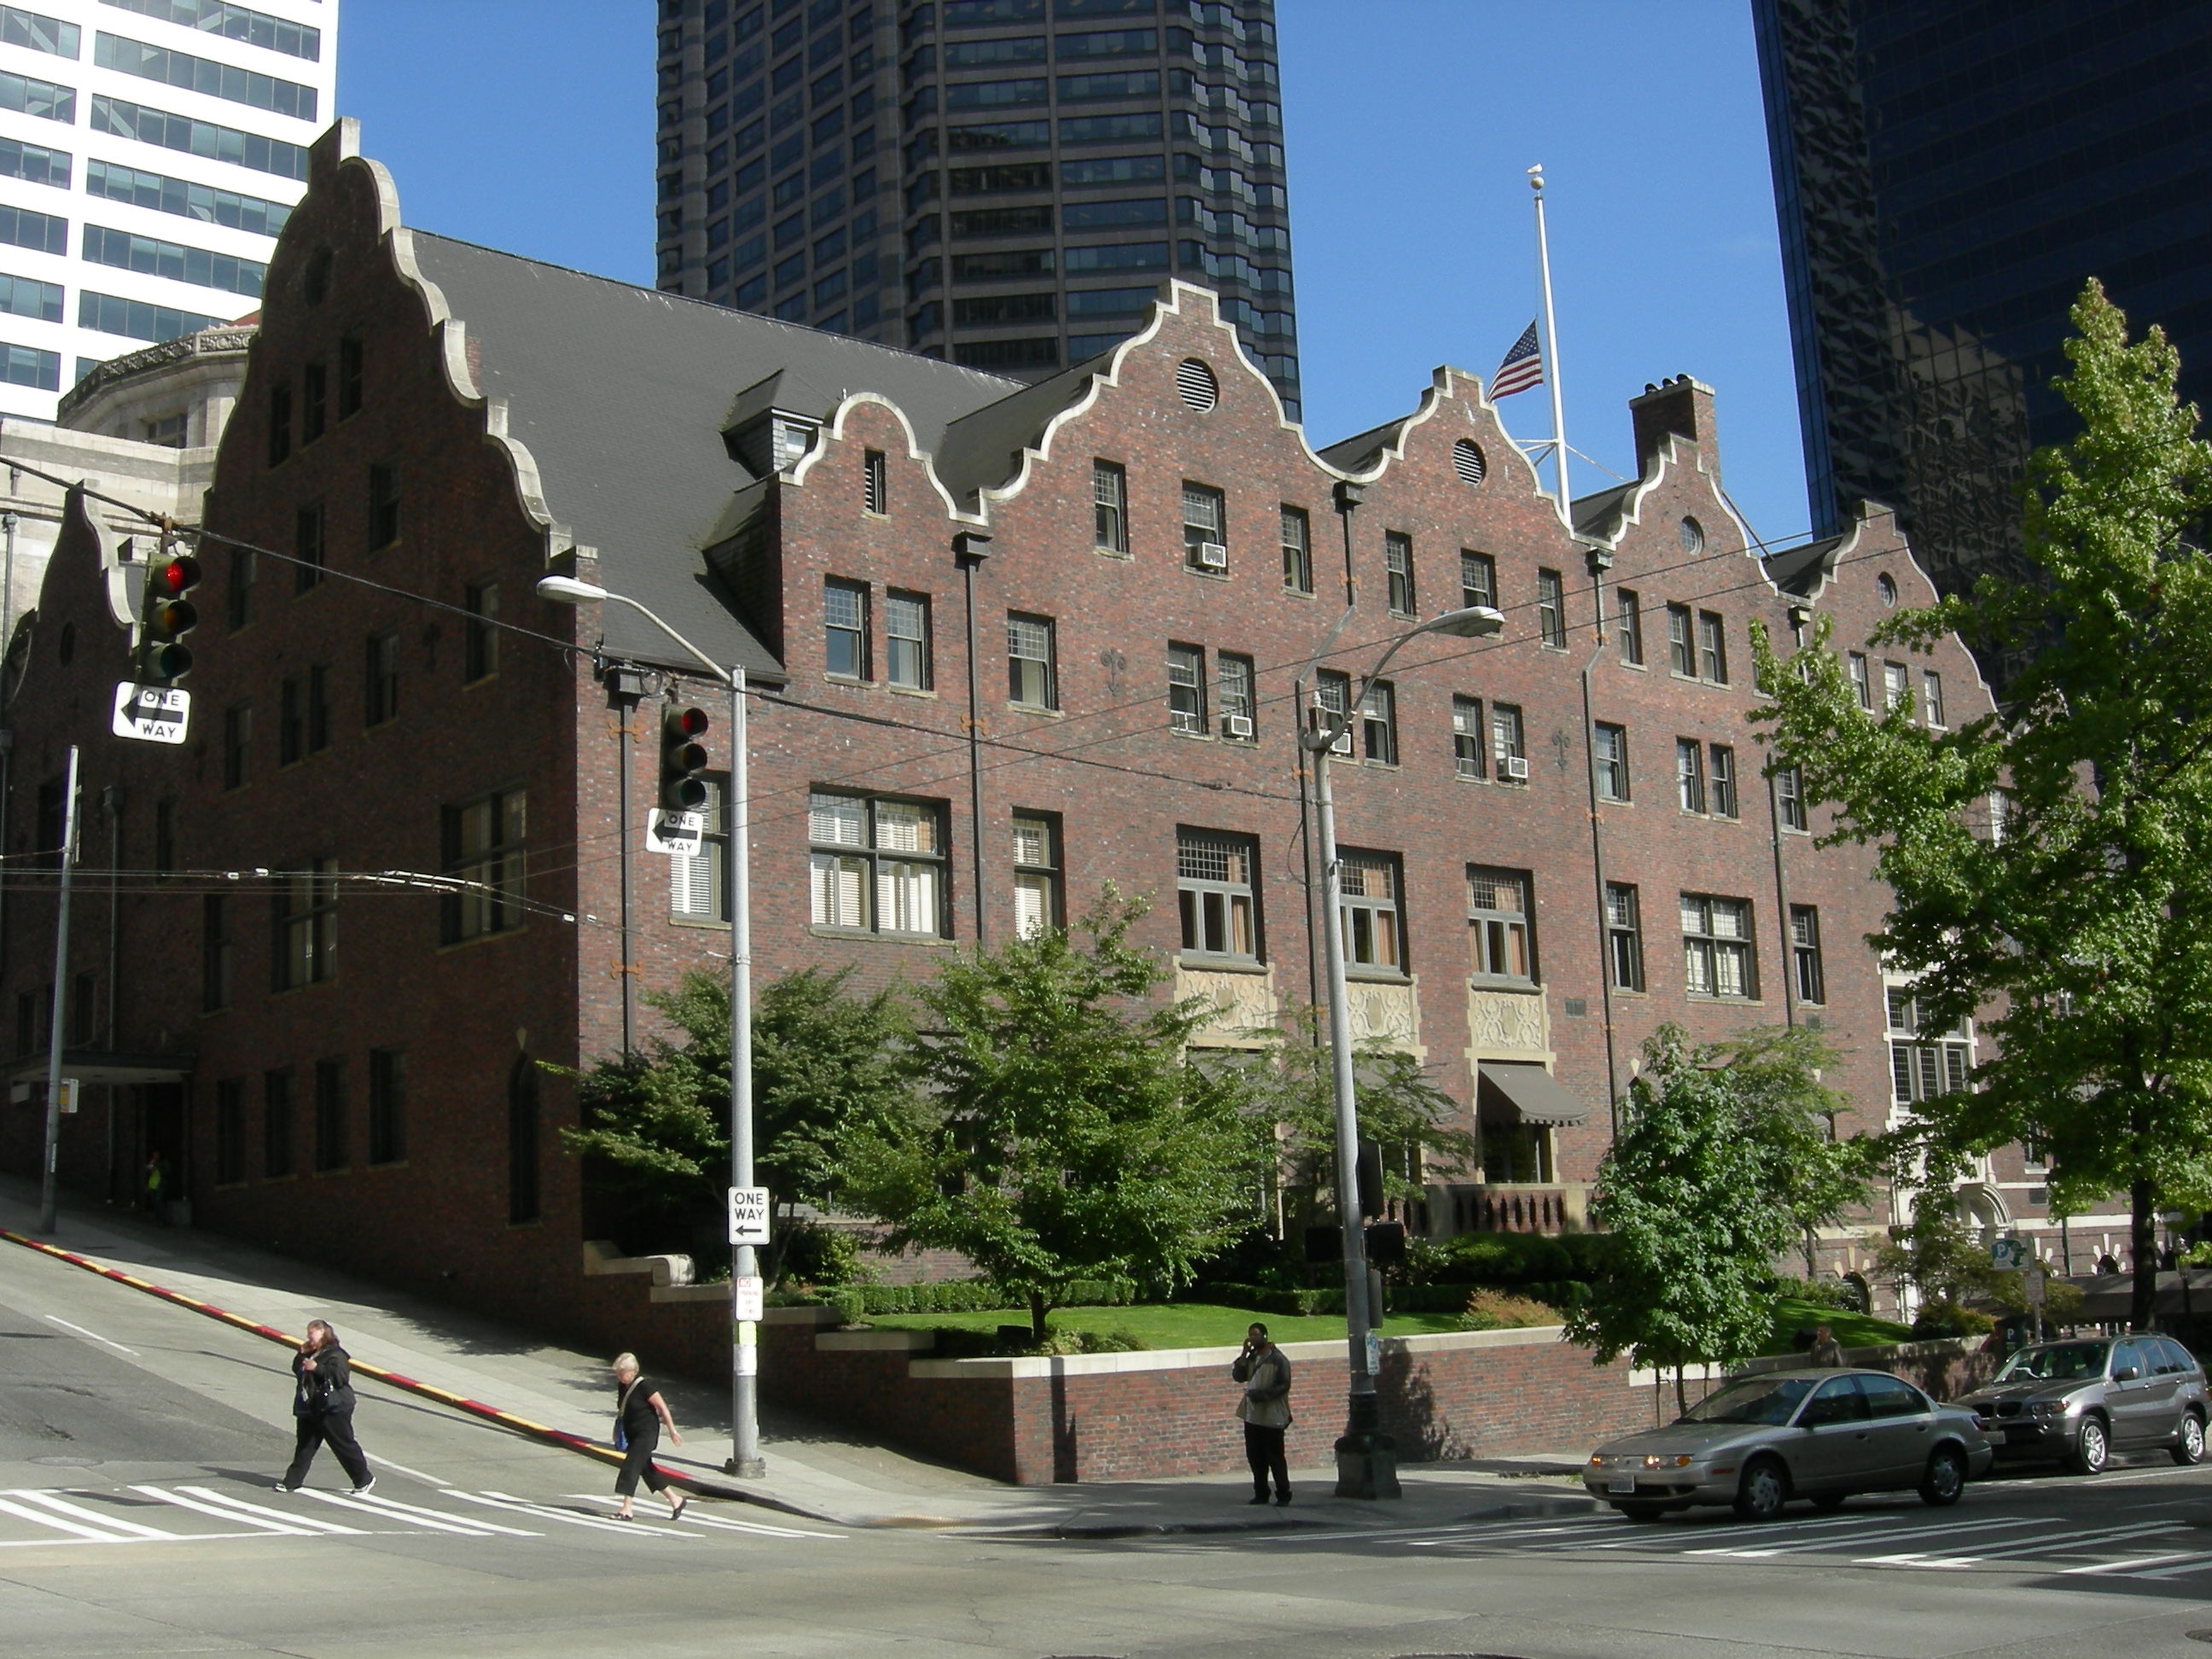 The Rainier club remains one of the most elegant and exclusive spaces in Seattle. Through its historic fund, members work to preserve the building which continues to host economic, political, and social functions.